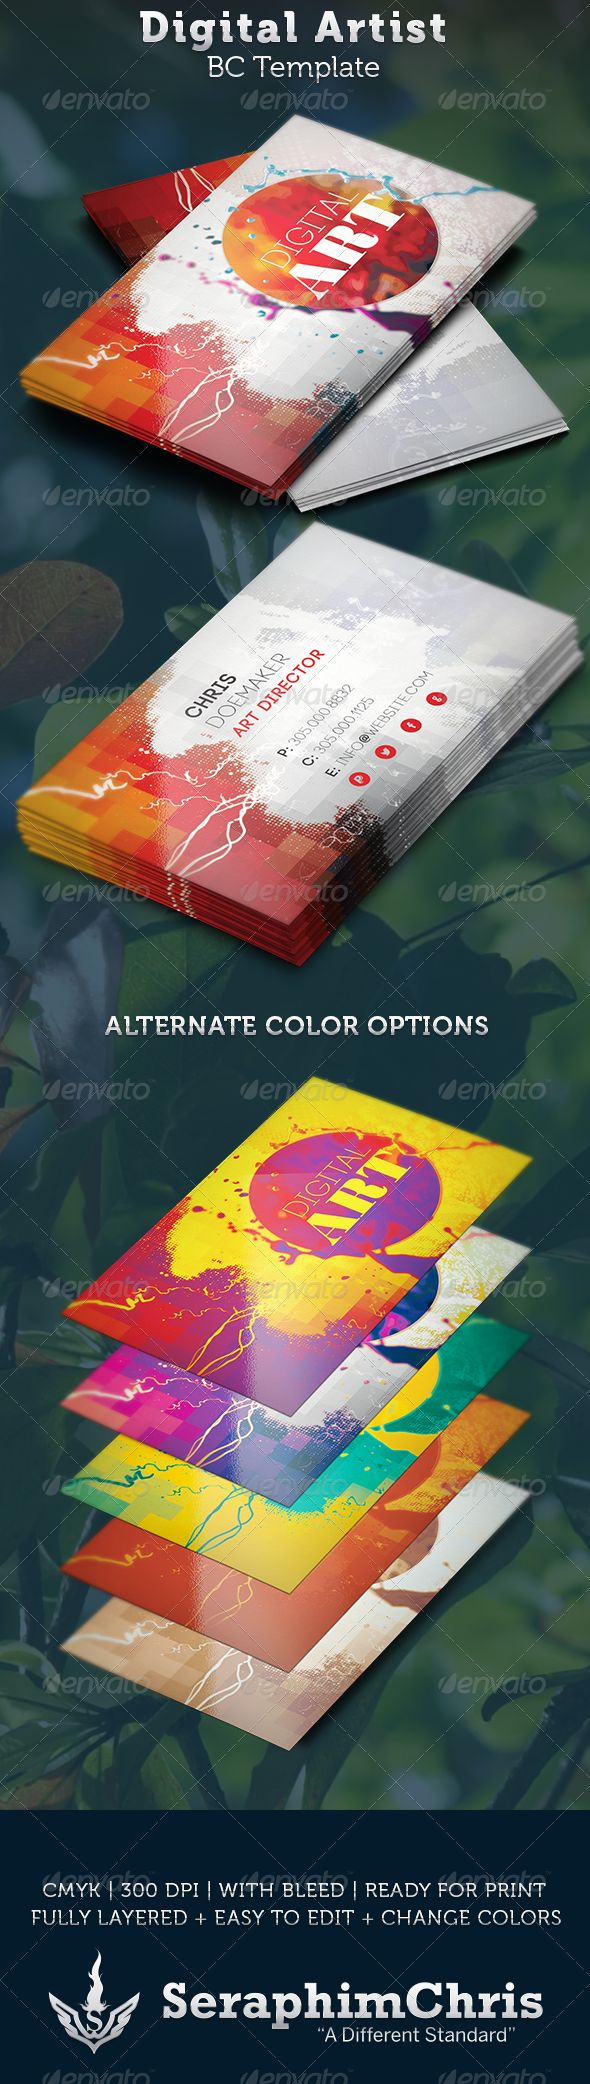 107 Best Business Cards And Branding For Artists Images On Pinterest